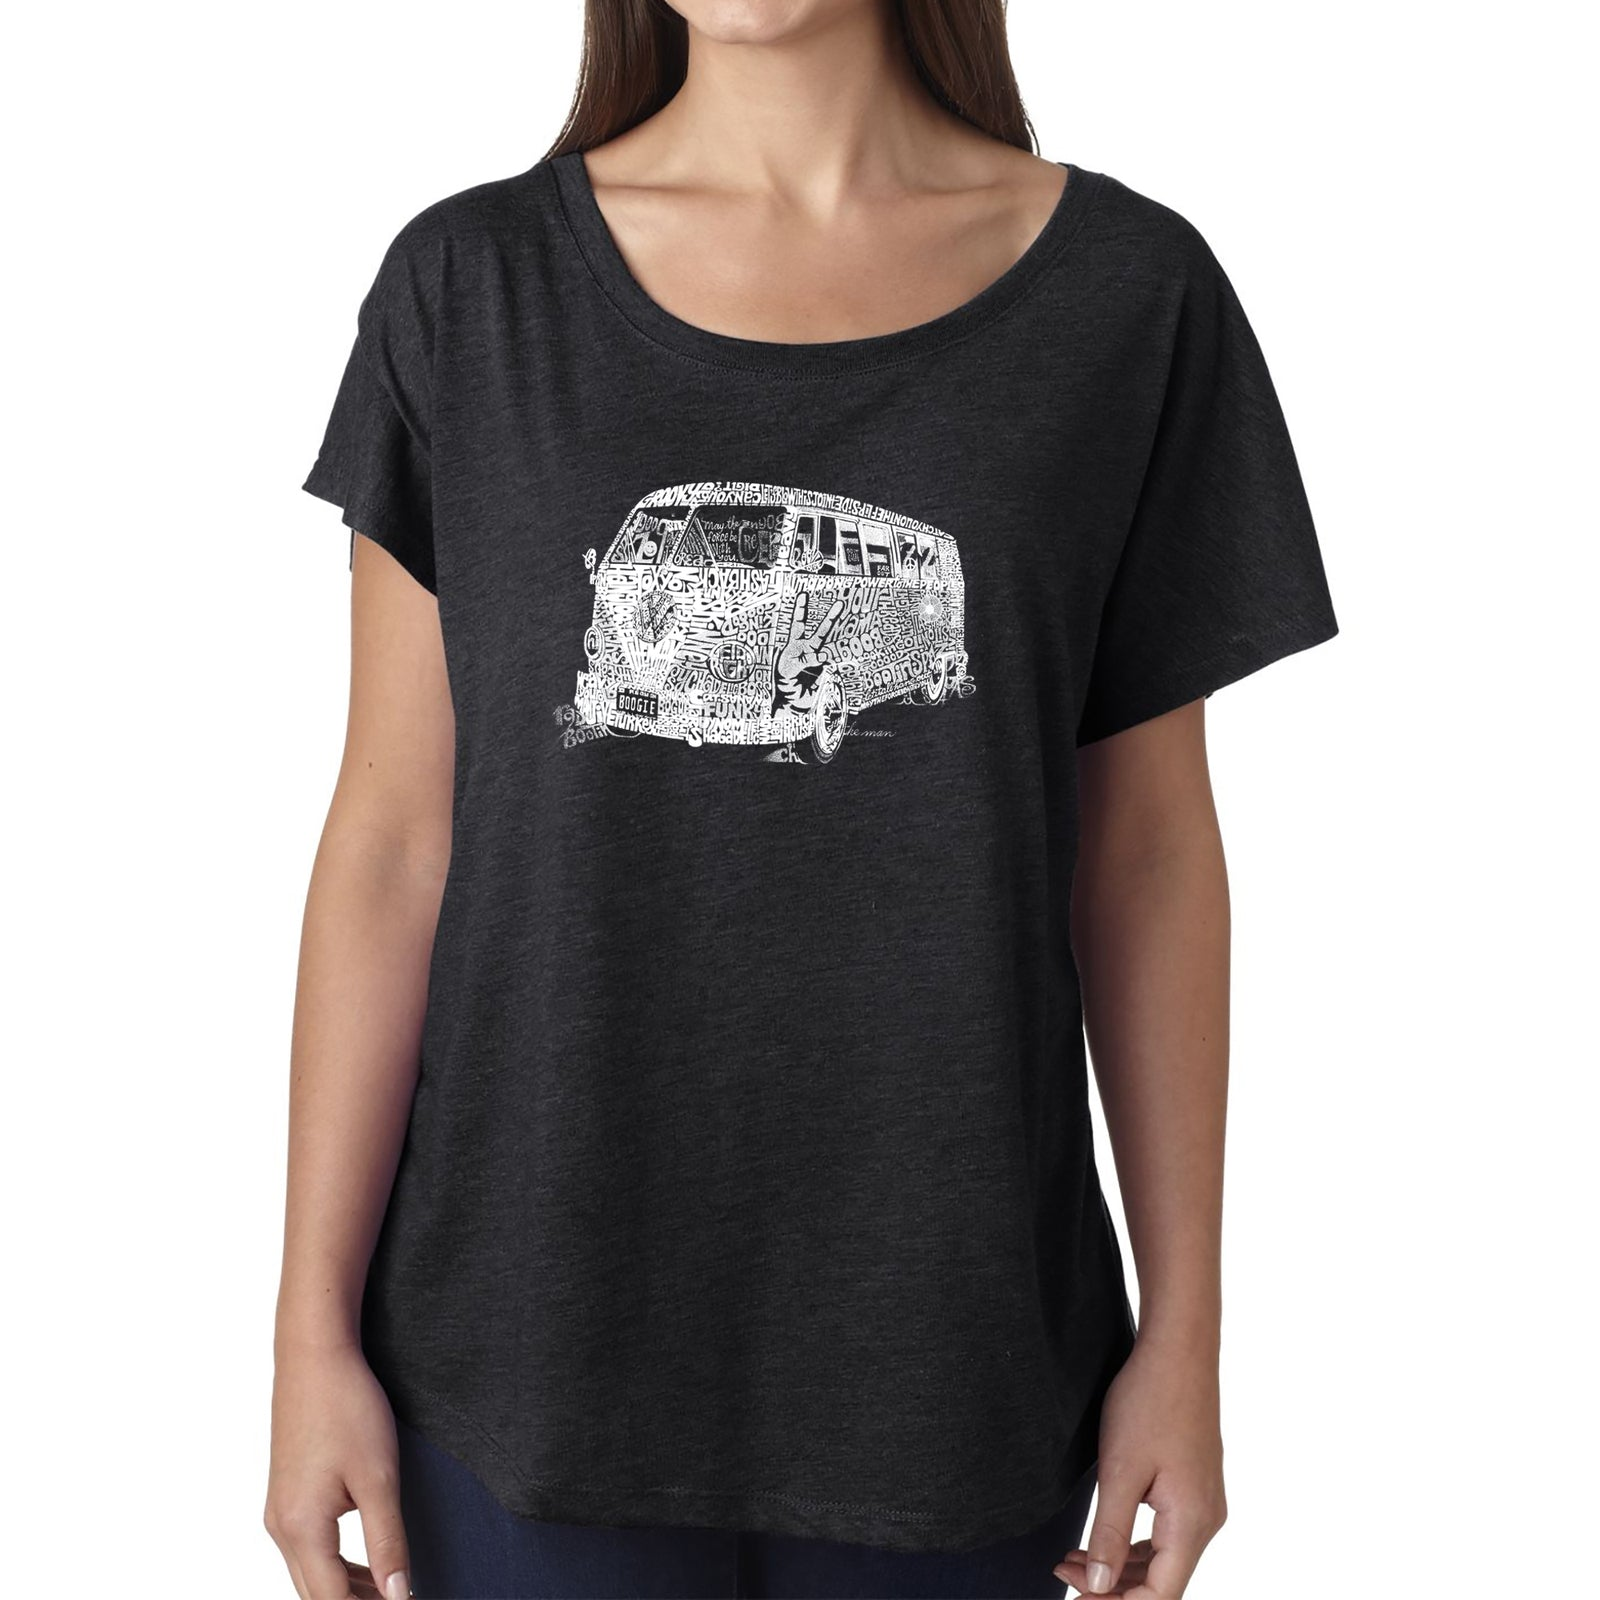 Women's Loose Fit Dolman Cut Word Art Shirt - THE 70'S